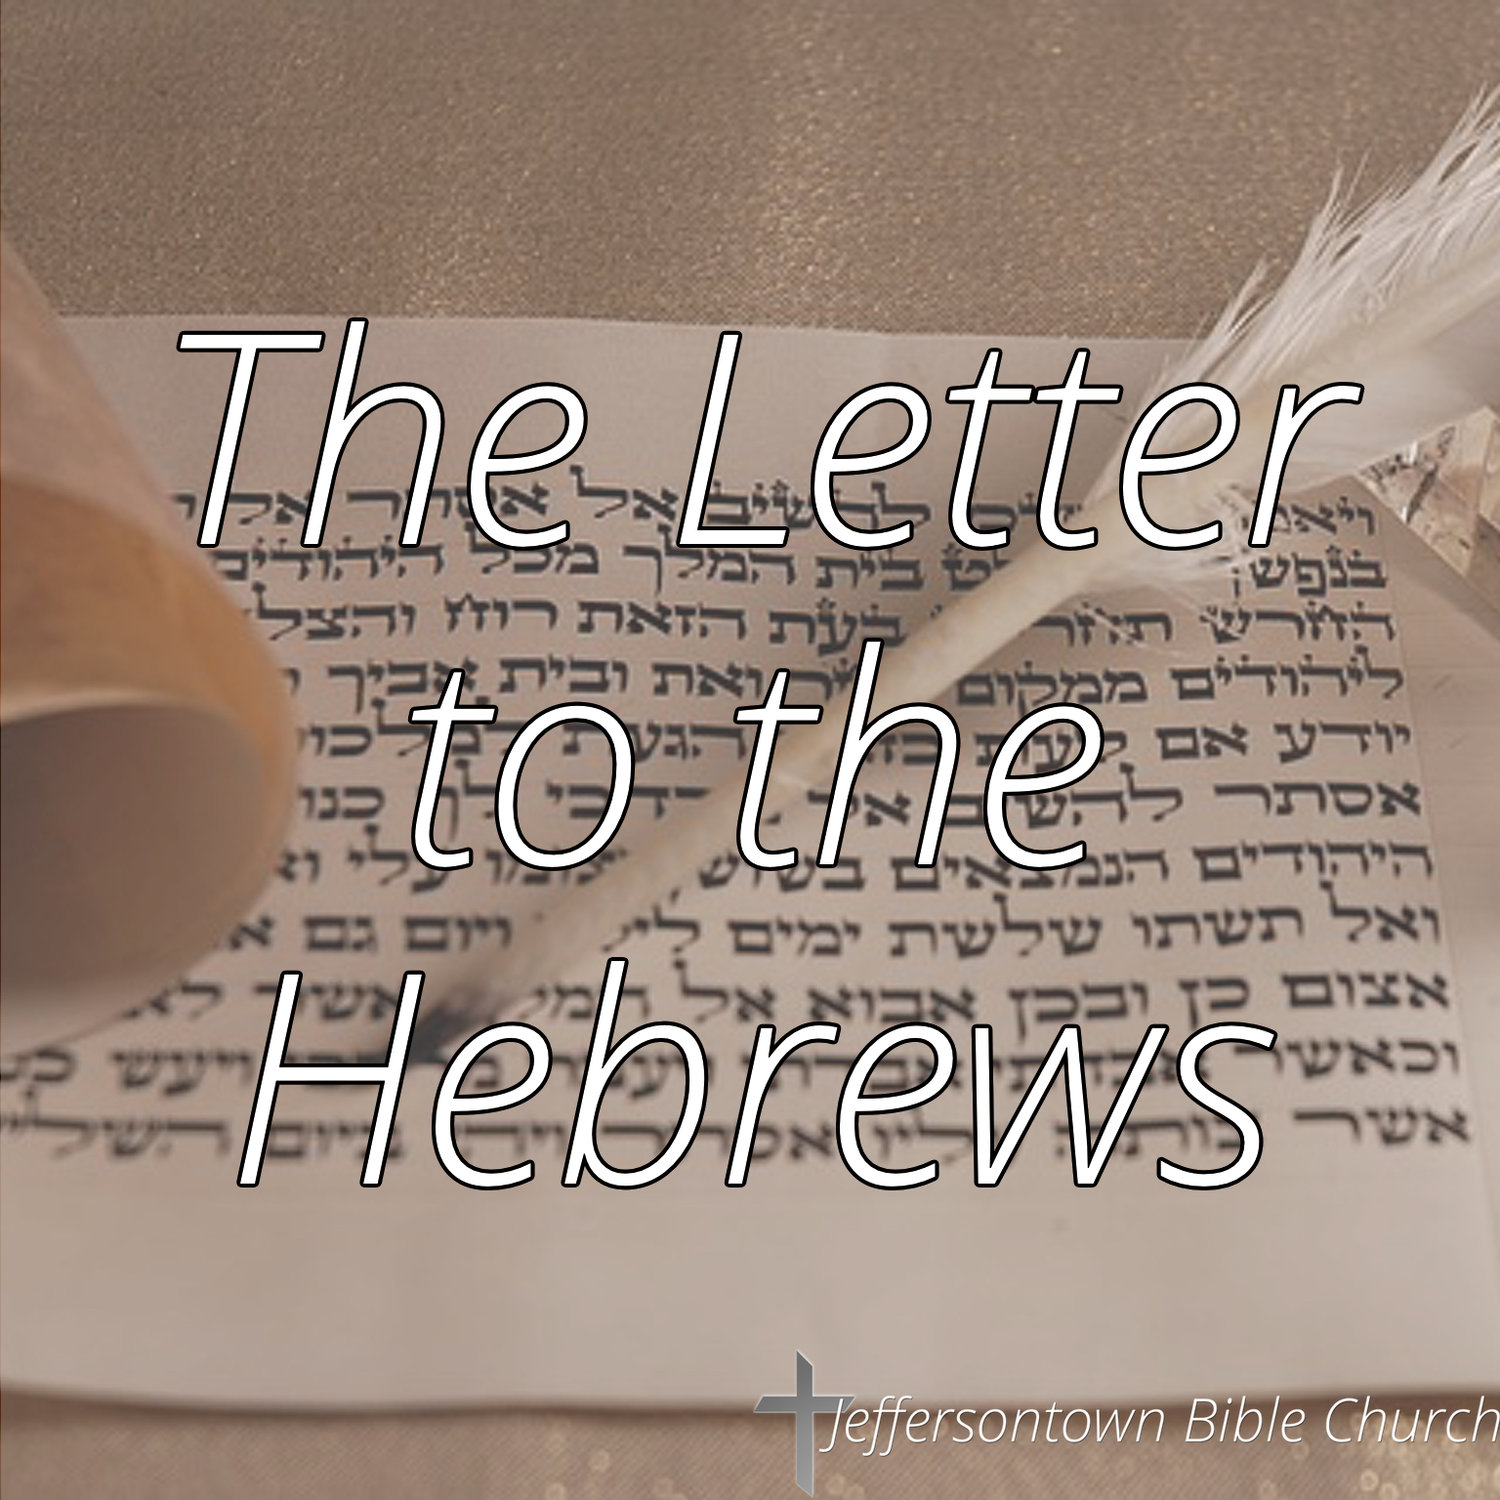 Five Exhortations Which Stimulate Entrance Into God's Rest, Part 3 - Hebrews 4:11-13